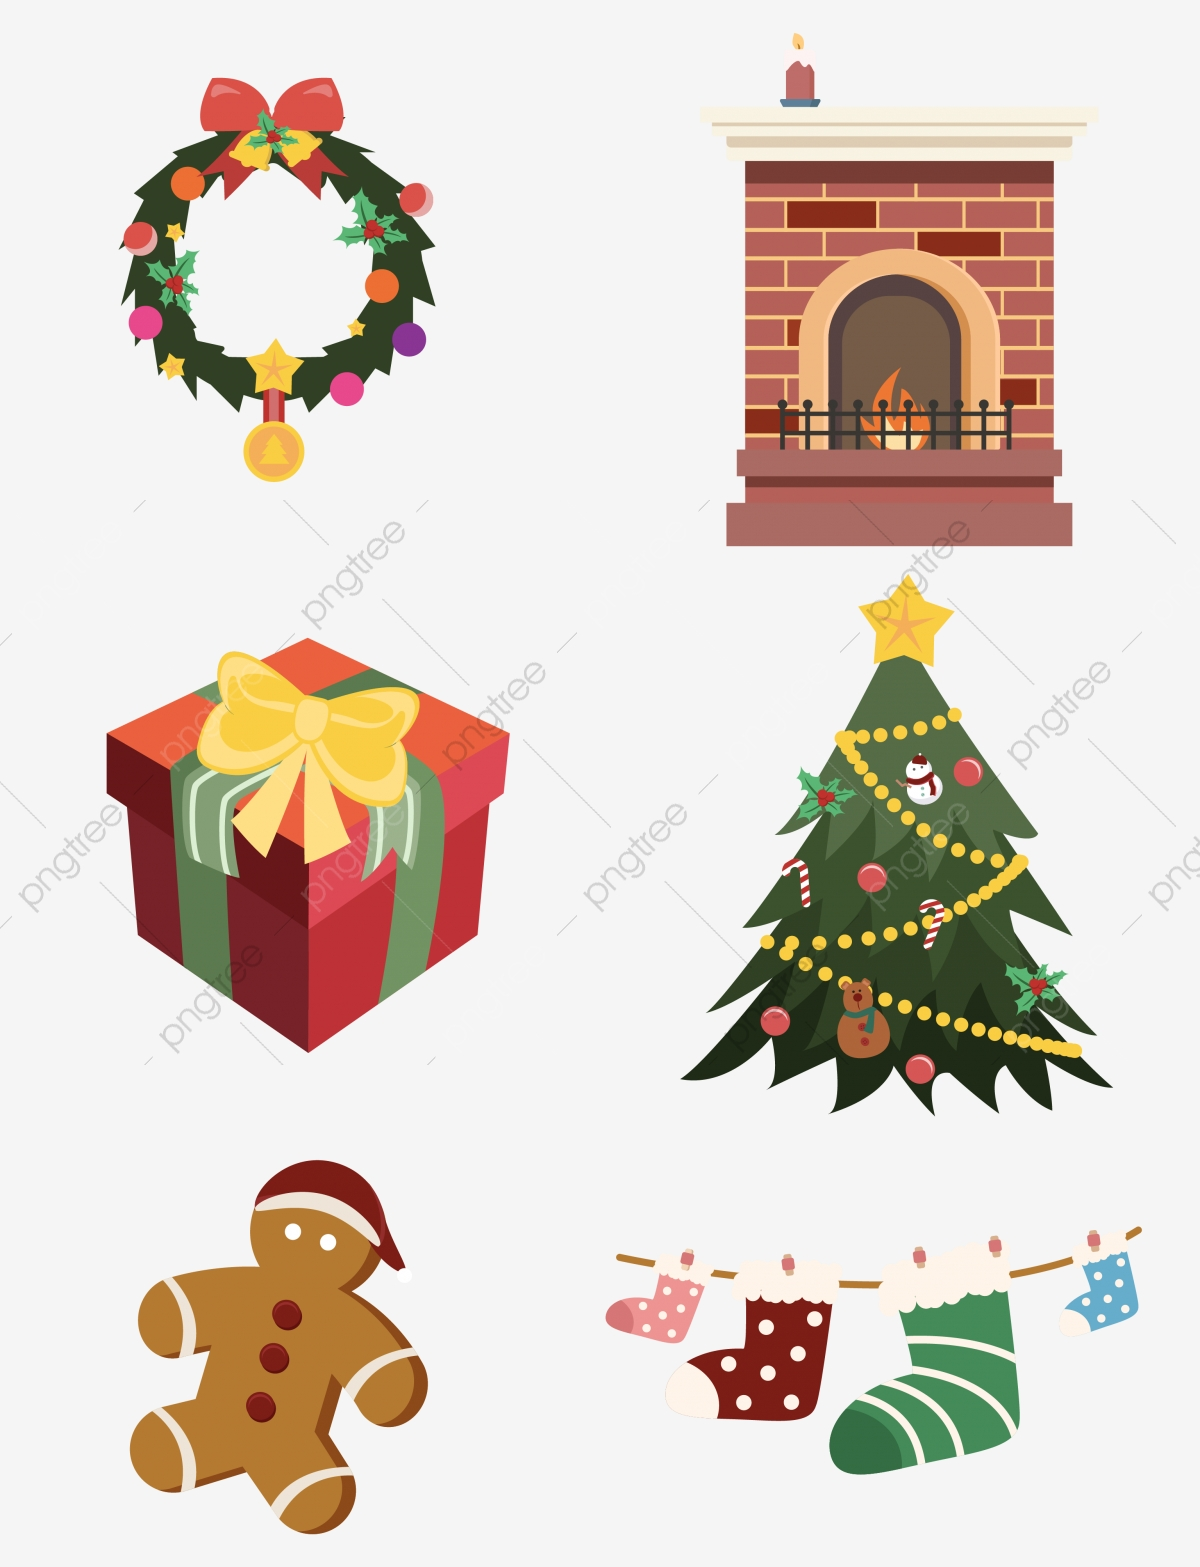 Christmas Cartoon Elements Fireplace Tree Set Illustration